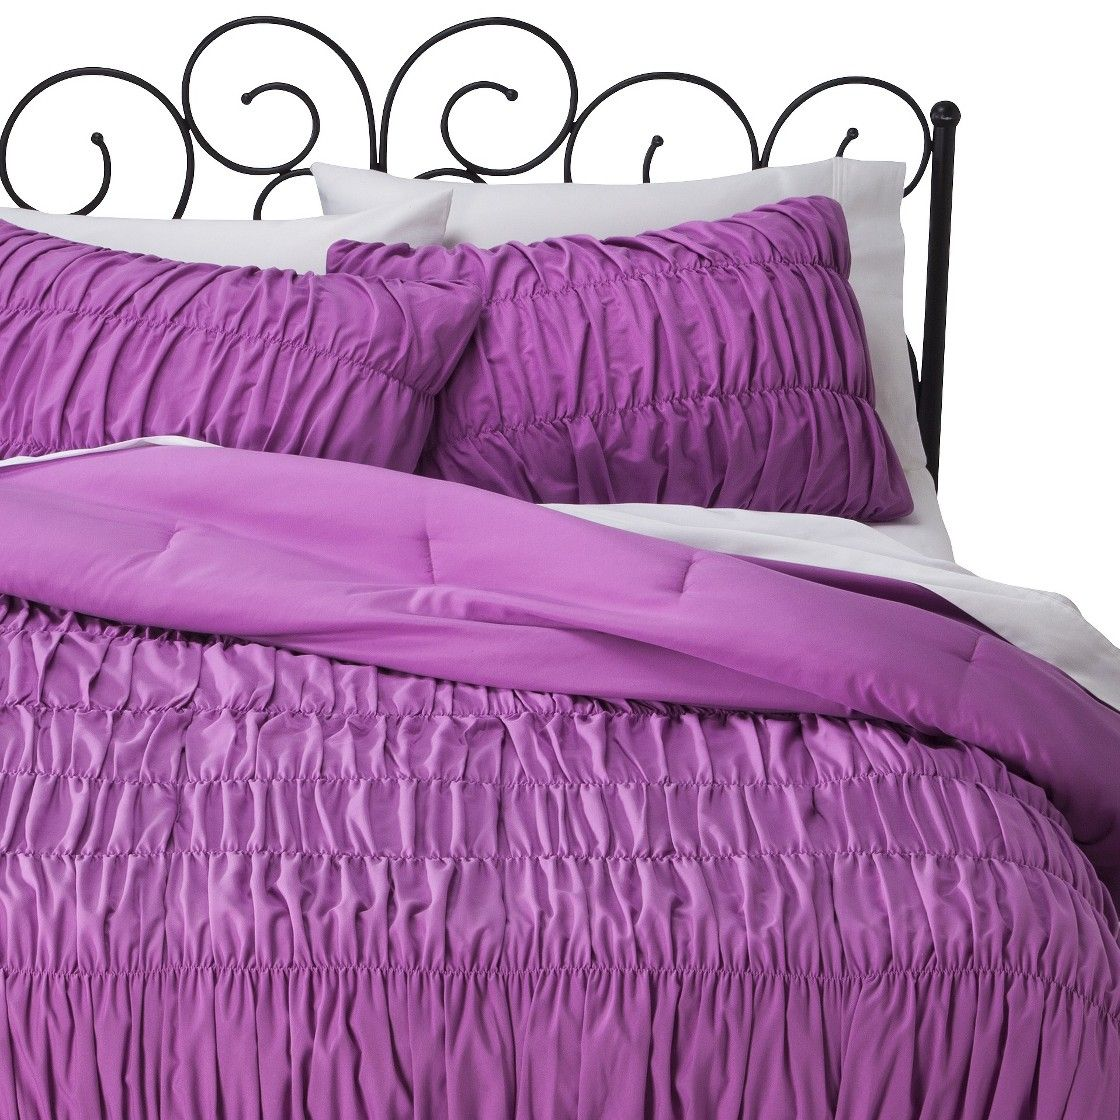 Xhilaration� Ruched Textured Comforter Set - Orchid